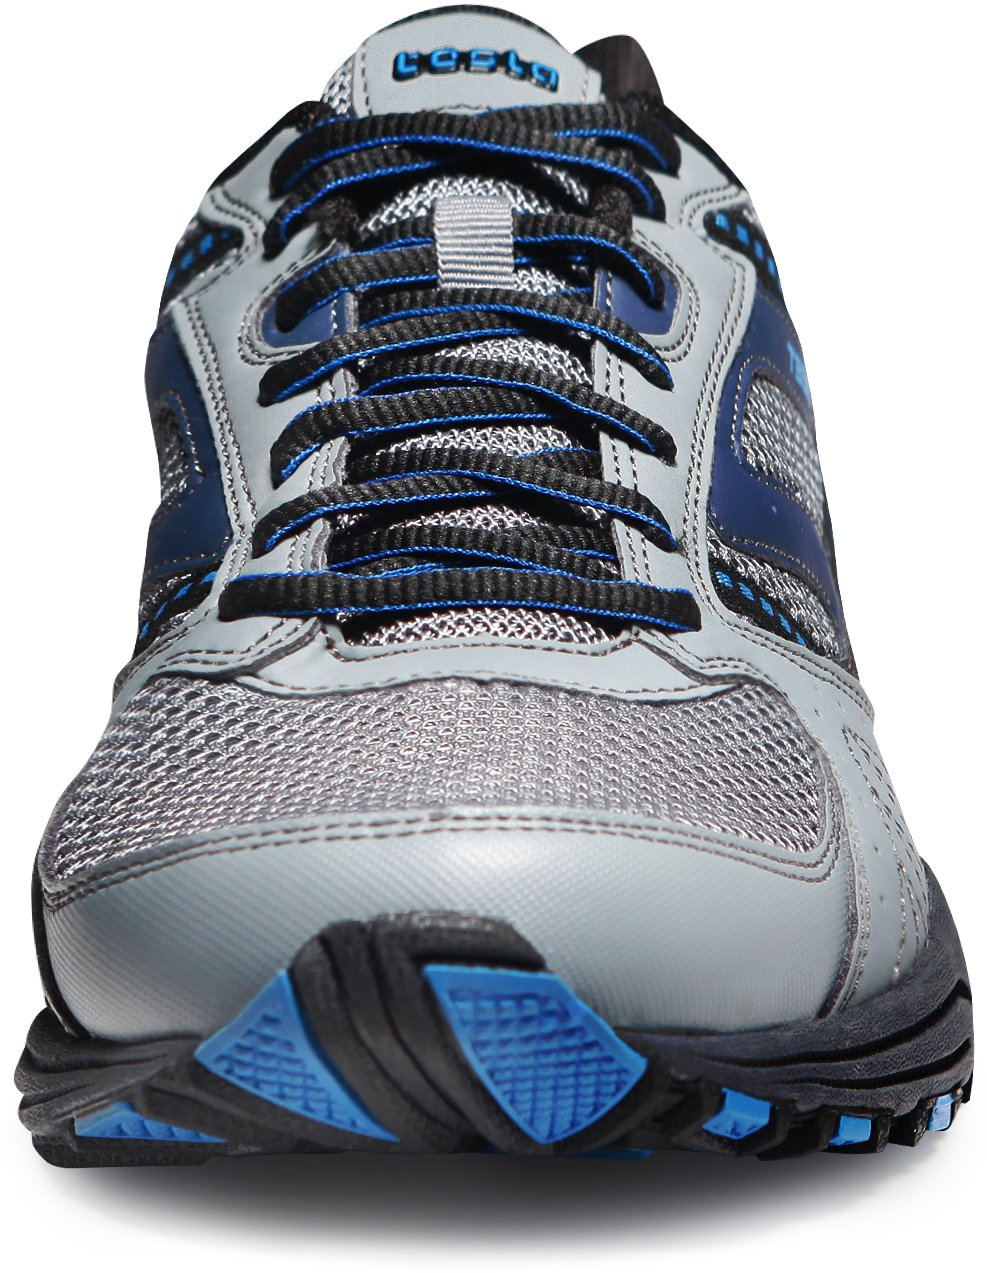 Tesla Men's Outdoor Sneakers Trail Running Shoe T330/T320 B07DN76KHR Men 9 D(M)|A1-T330-LGB